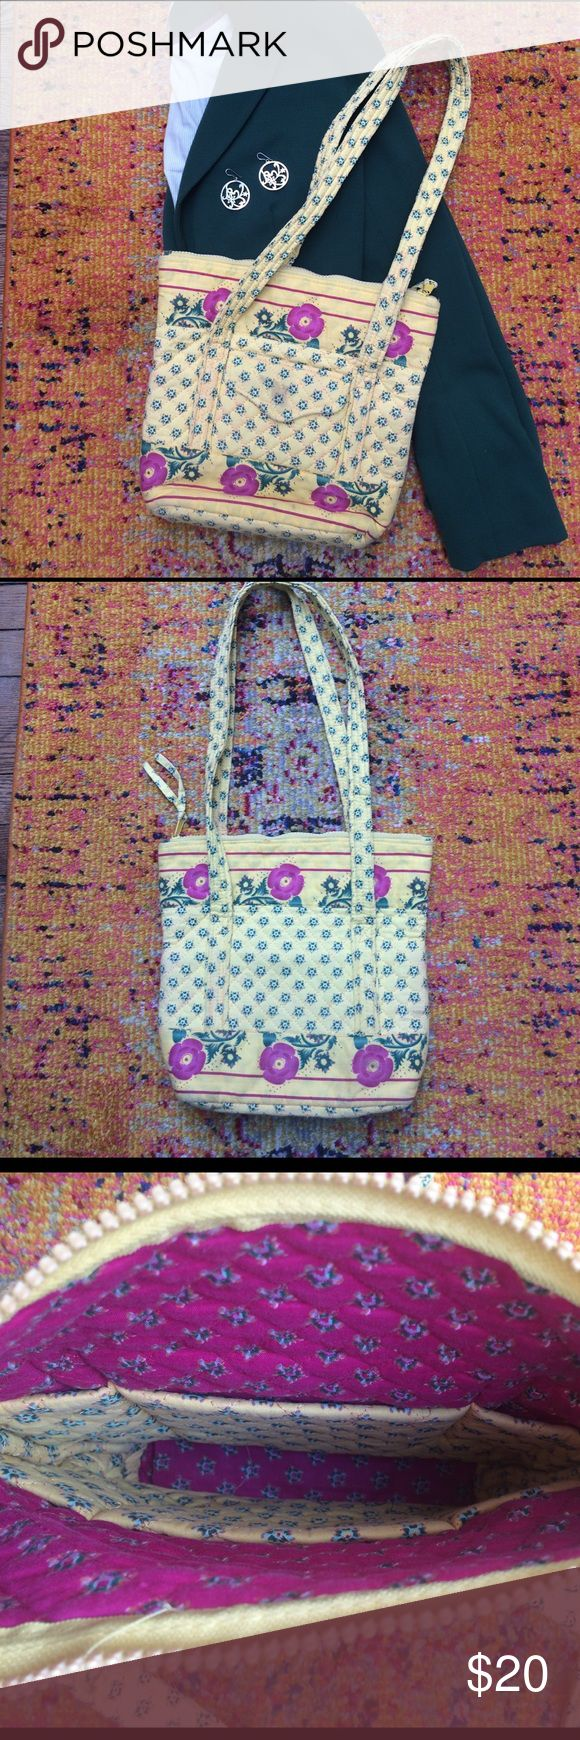 Cheerful floral purse Super cute quilted floral purse. Strong and holds a lot but not bulky. On MAJOR discount due to some spots (though might get out with wash). All outfit items on sale. Great with feminine pieces like a flowy skirt! Bags Shoulder Bags